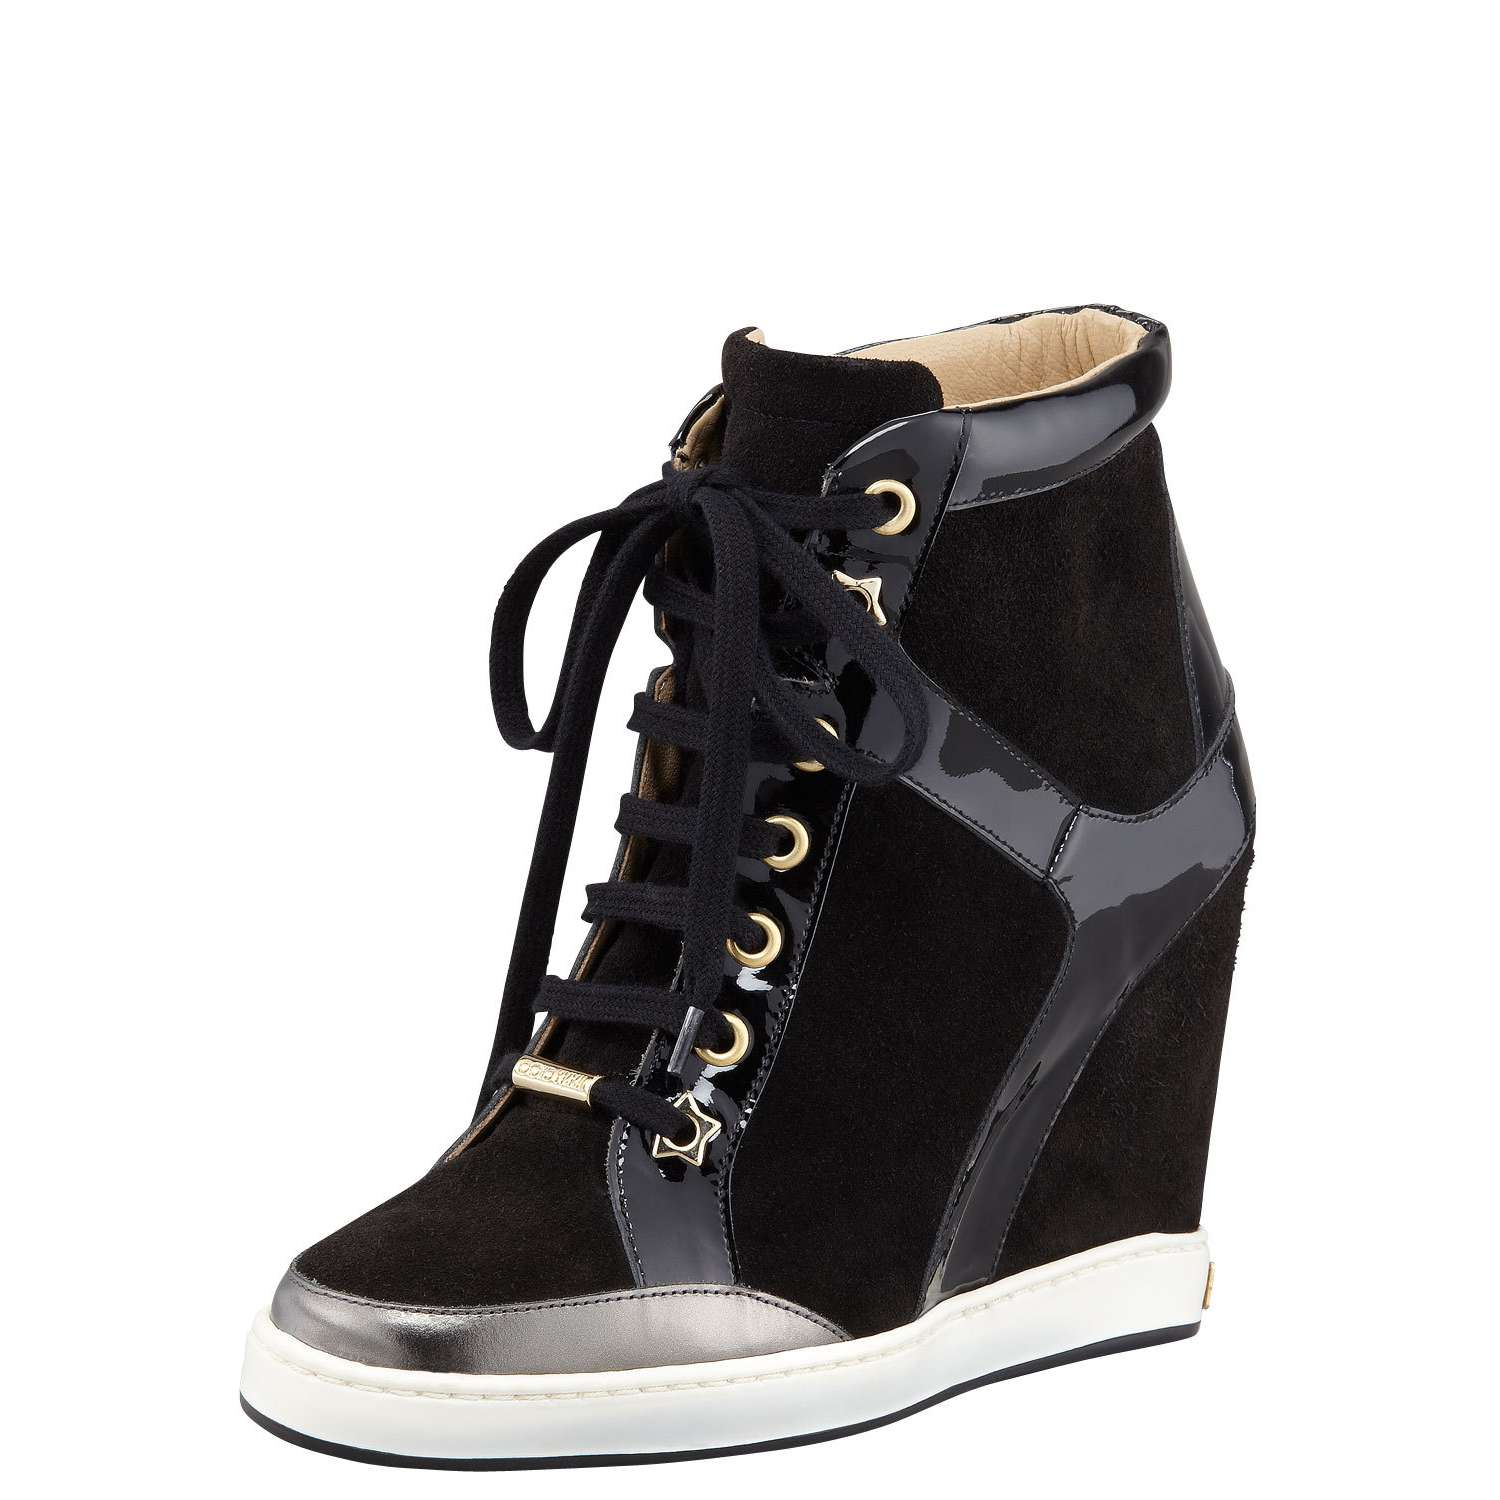 Wedge Heel Sneakers For Women SvtGJcpn